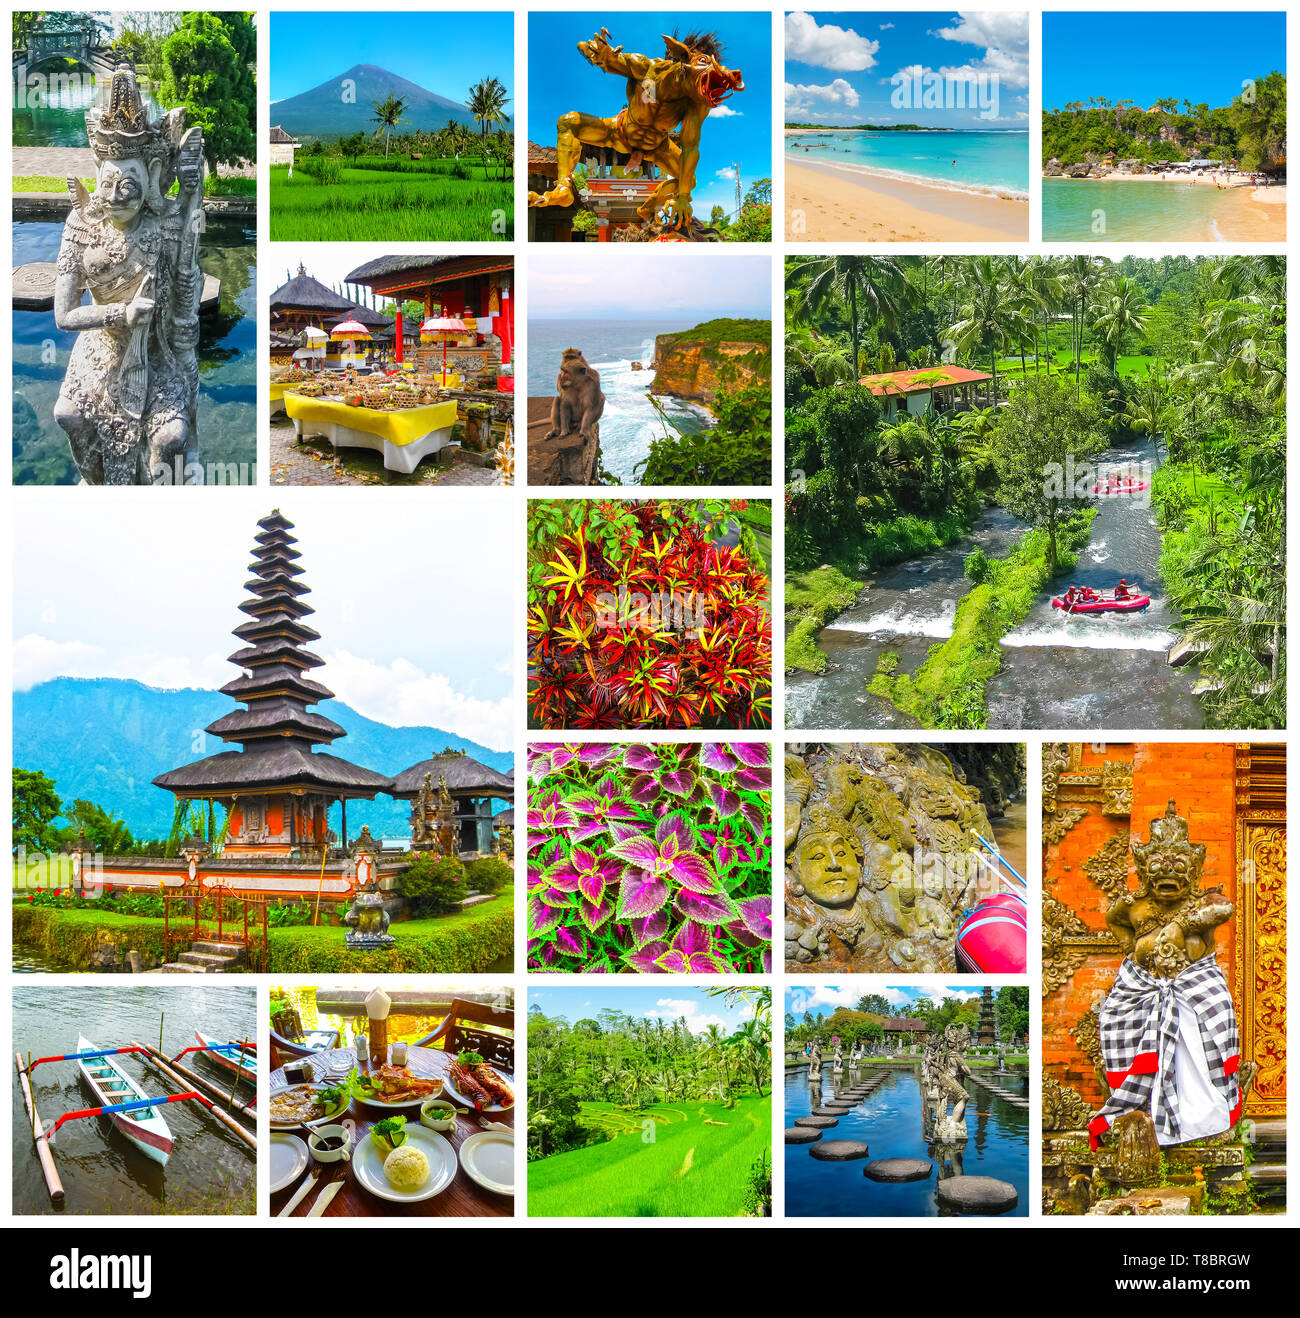 The collage on the theme of Bali, Indonesia - Stock Image